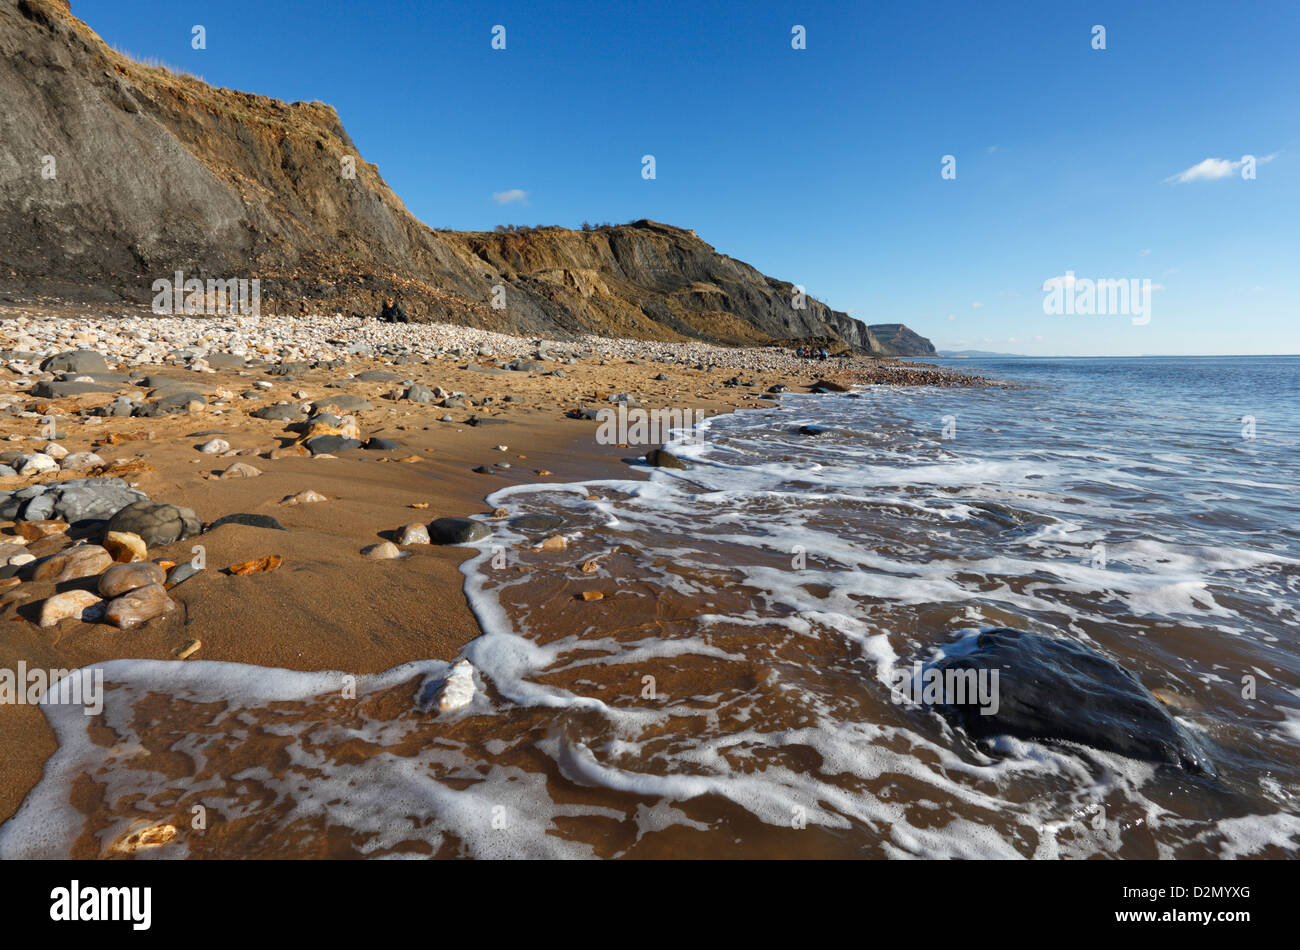 Fossil Rich cliffs at Charmouth Beach. Jurassic Coast World Heritage Site. Dorset. England. UK. - Stock Image